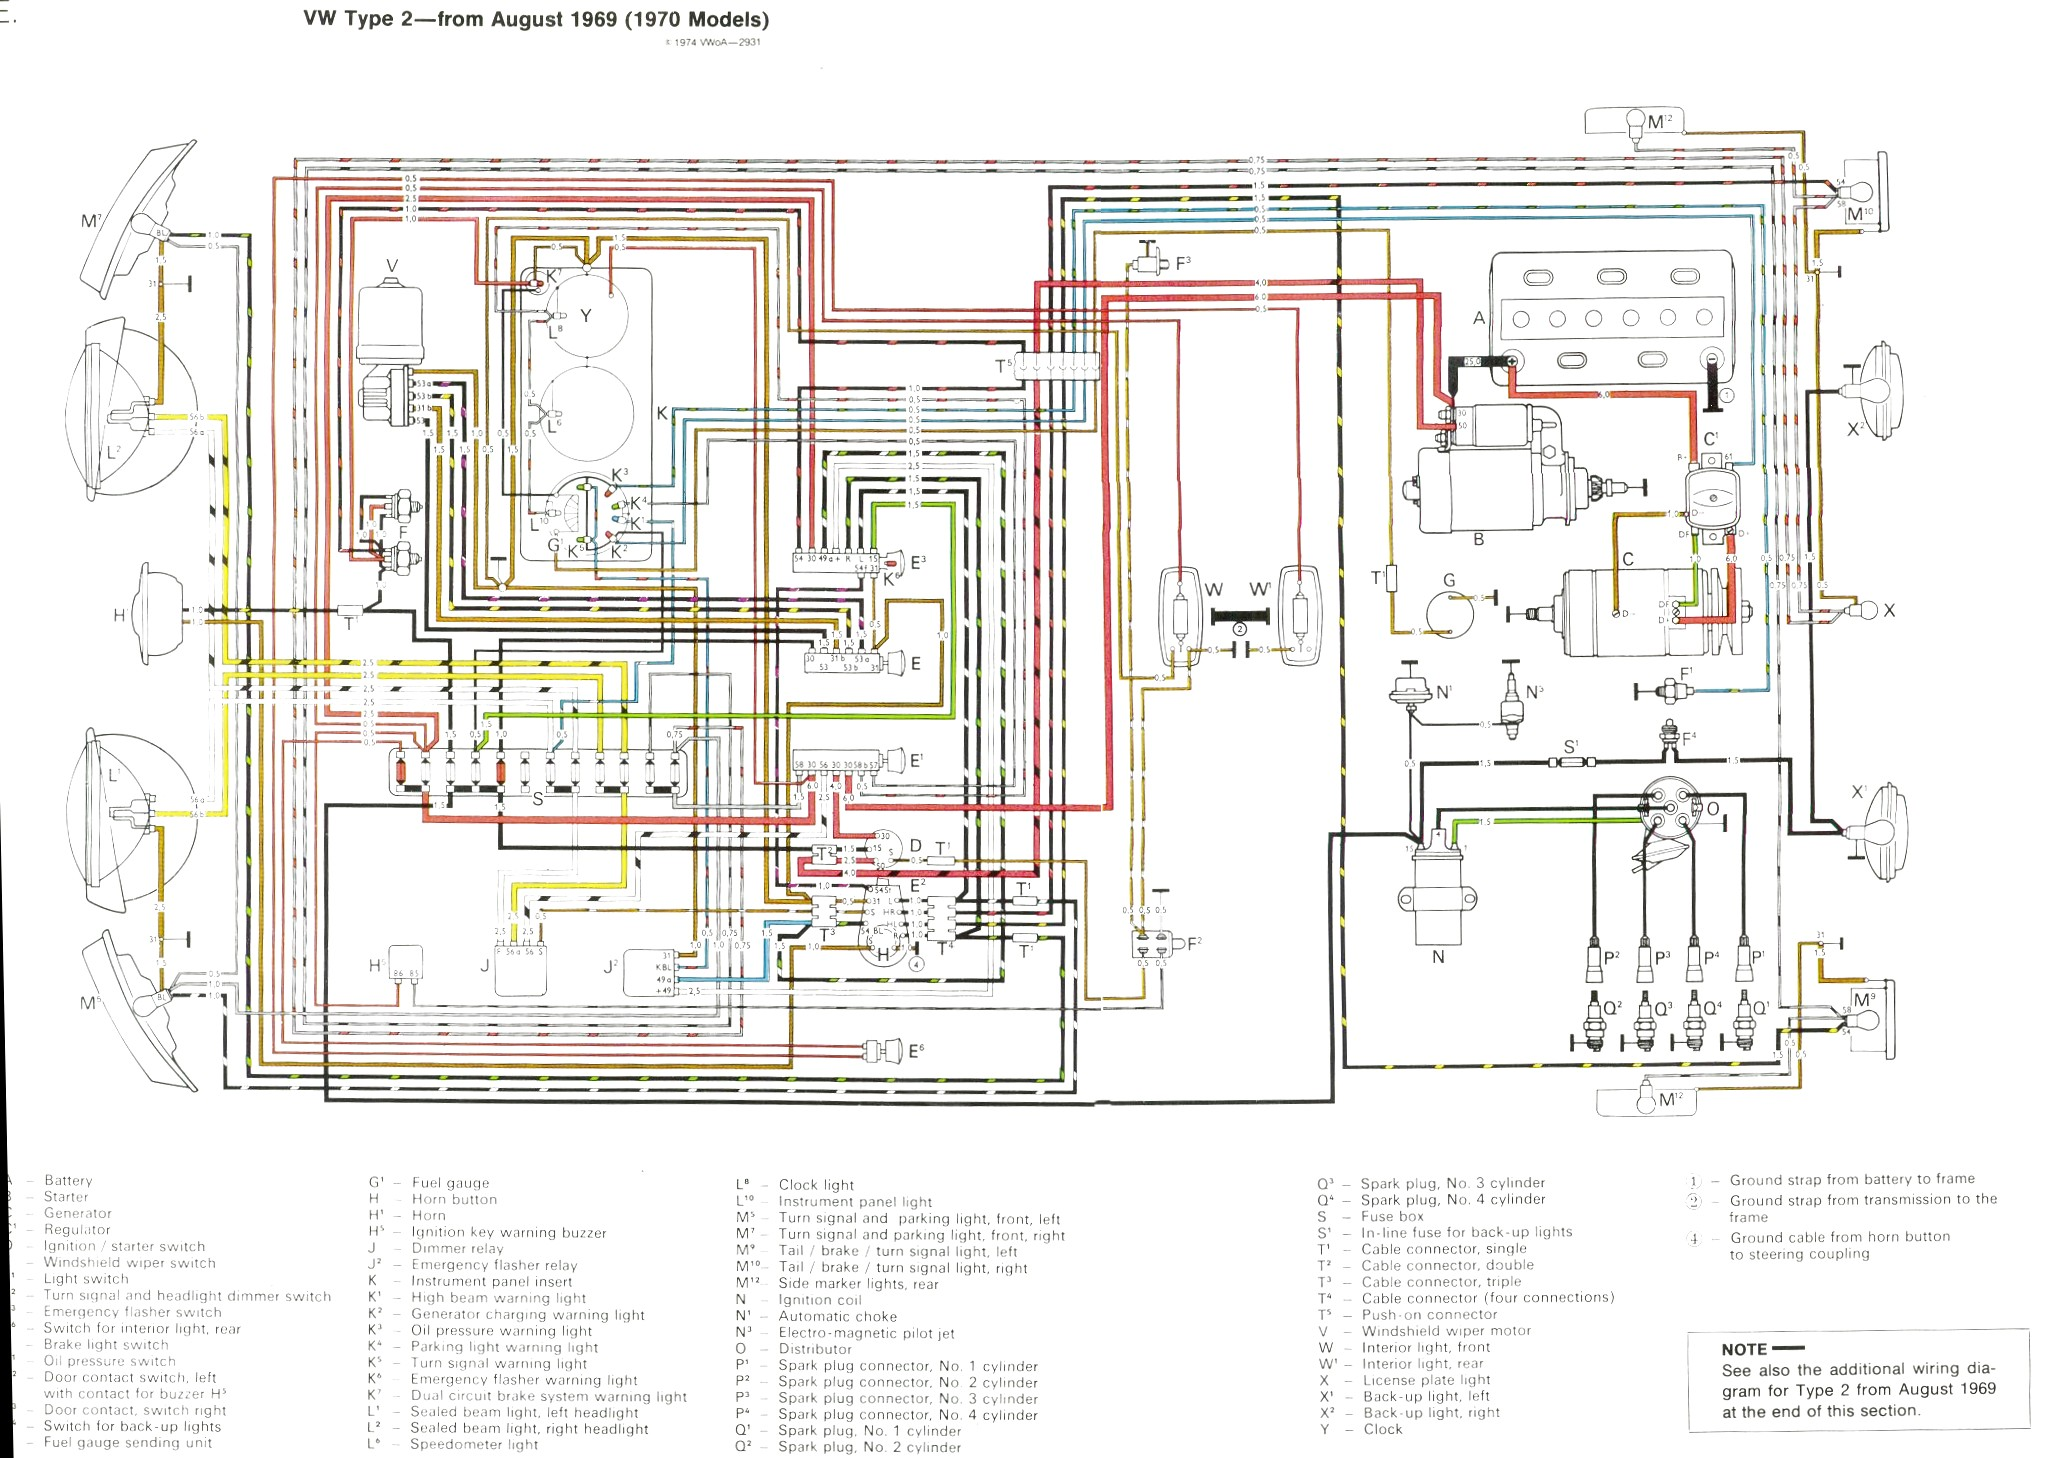 1970 08 Vw T2 Wiring Diagram Schematics Diagrams 72 Beetle Wire 1973 Transporter Engine U2022 Rh Parntesis Co 1967